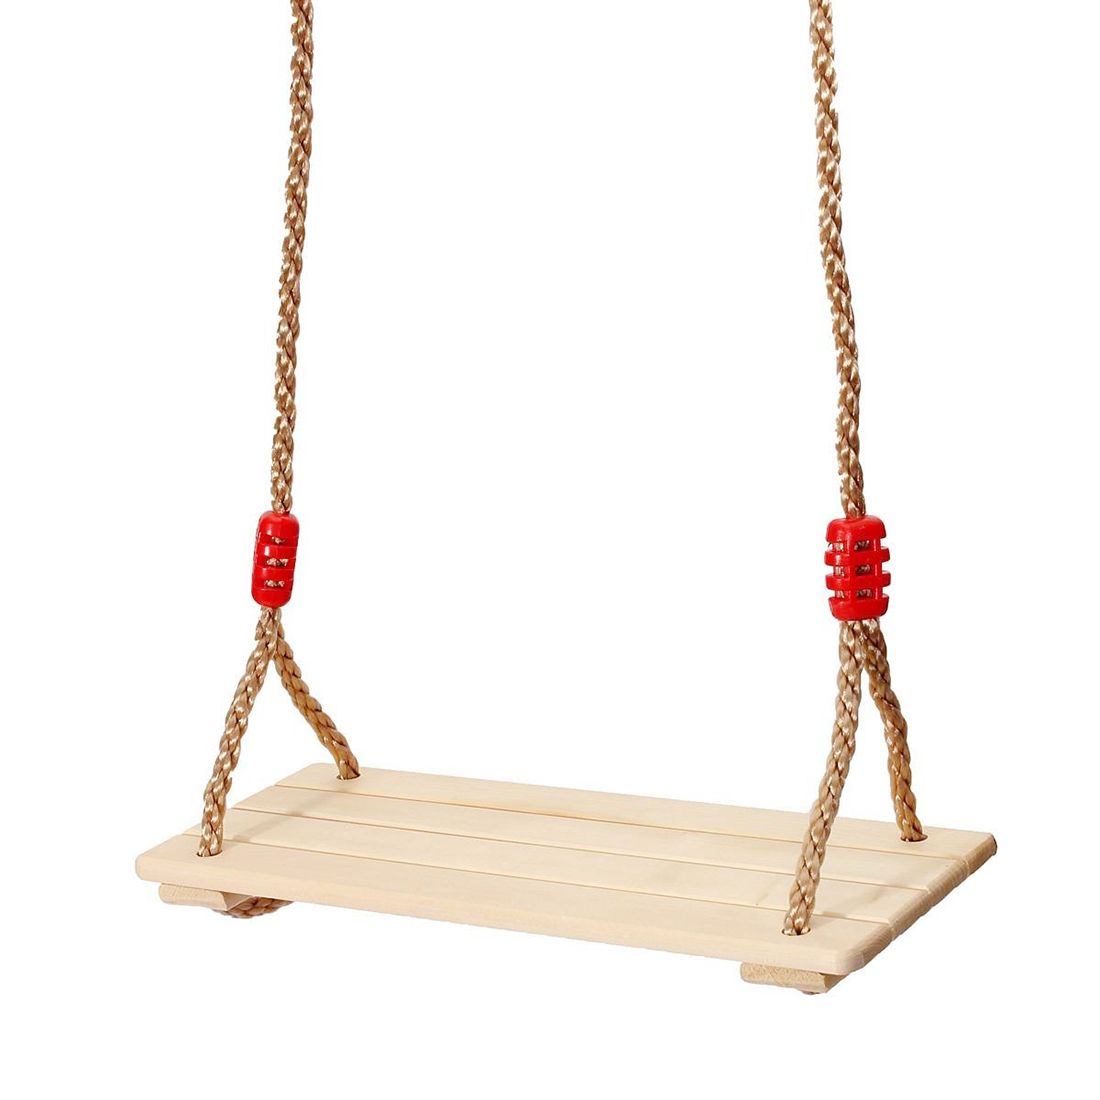 Adults And Children Swing  Wooden Swing With Rope Toys For Children Outdoor Garden Swings